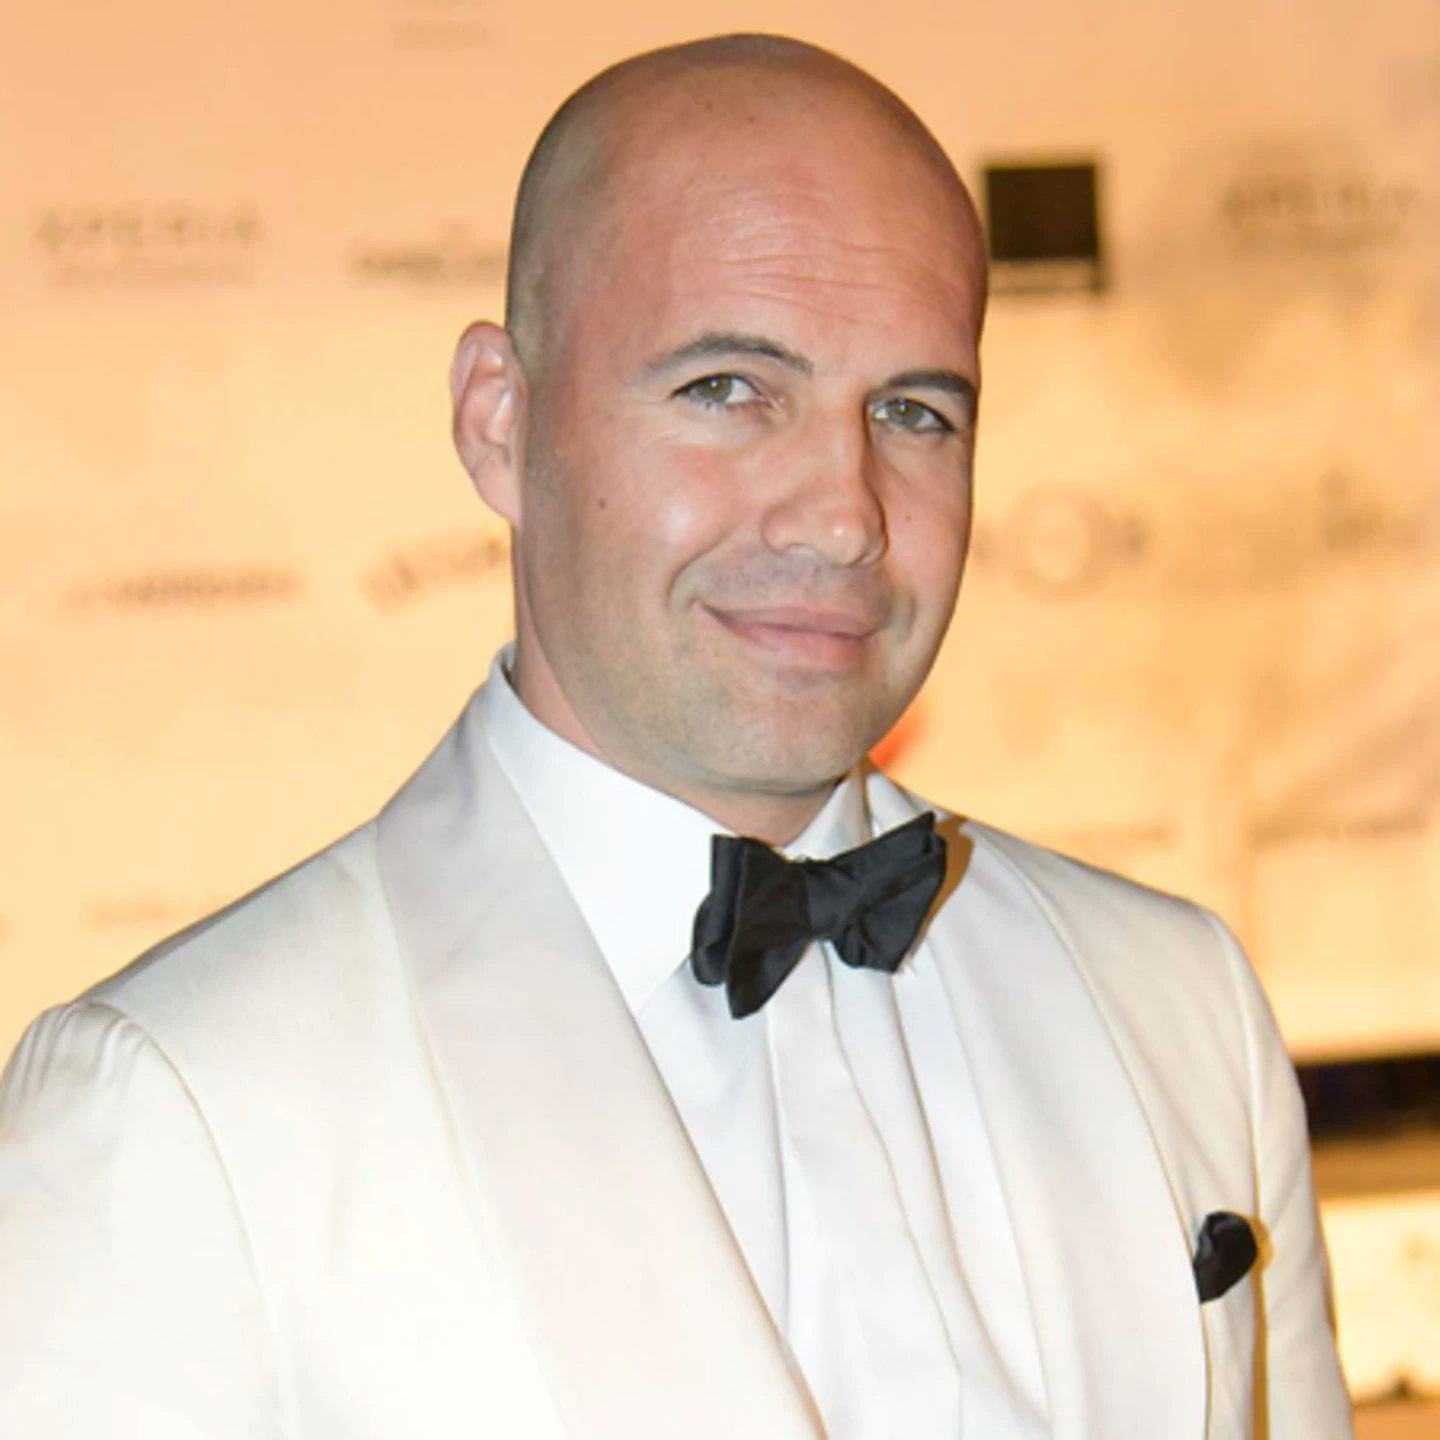 Happy Birthday dear Billy Zane!